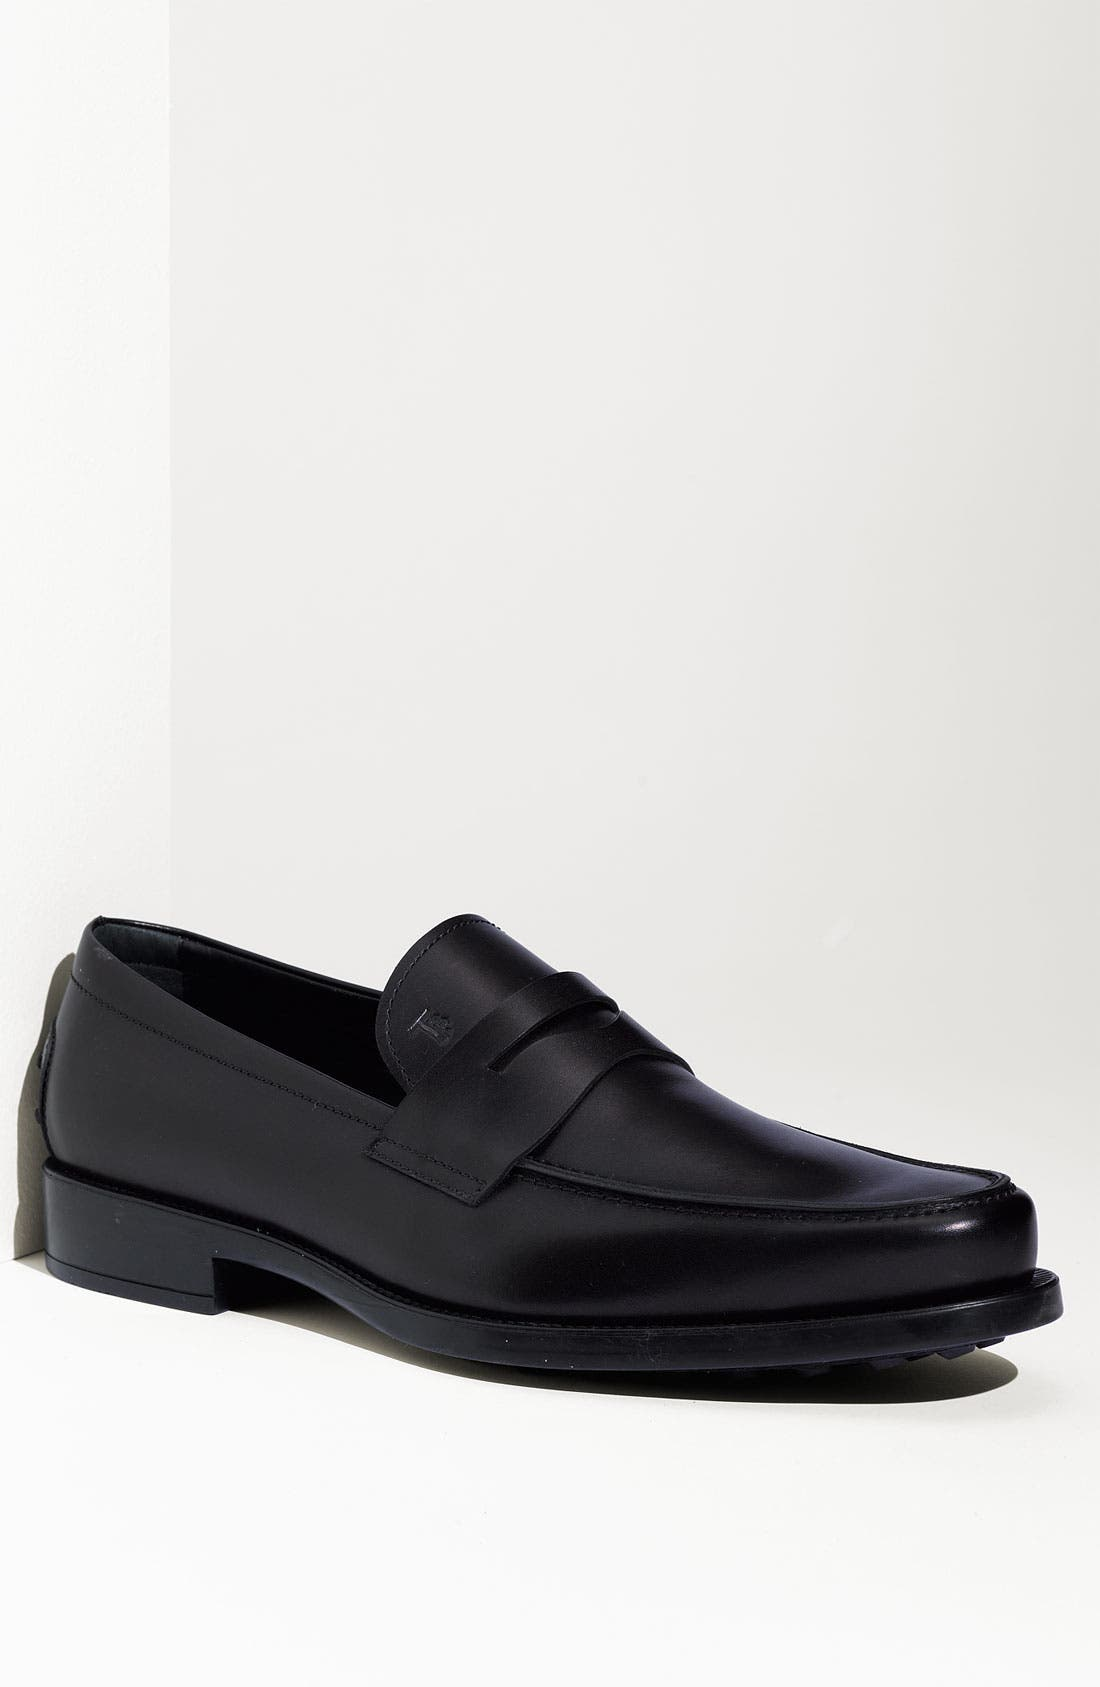 Main Image - Tod's 'Boston' Penny Loafer